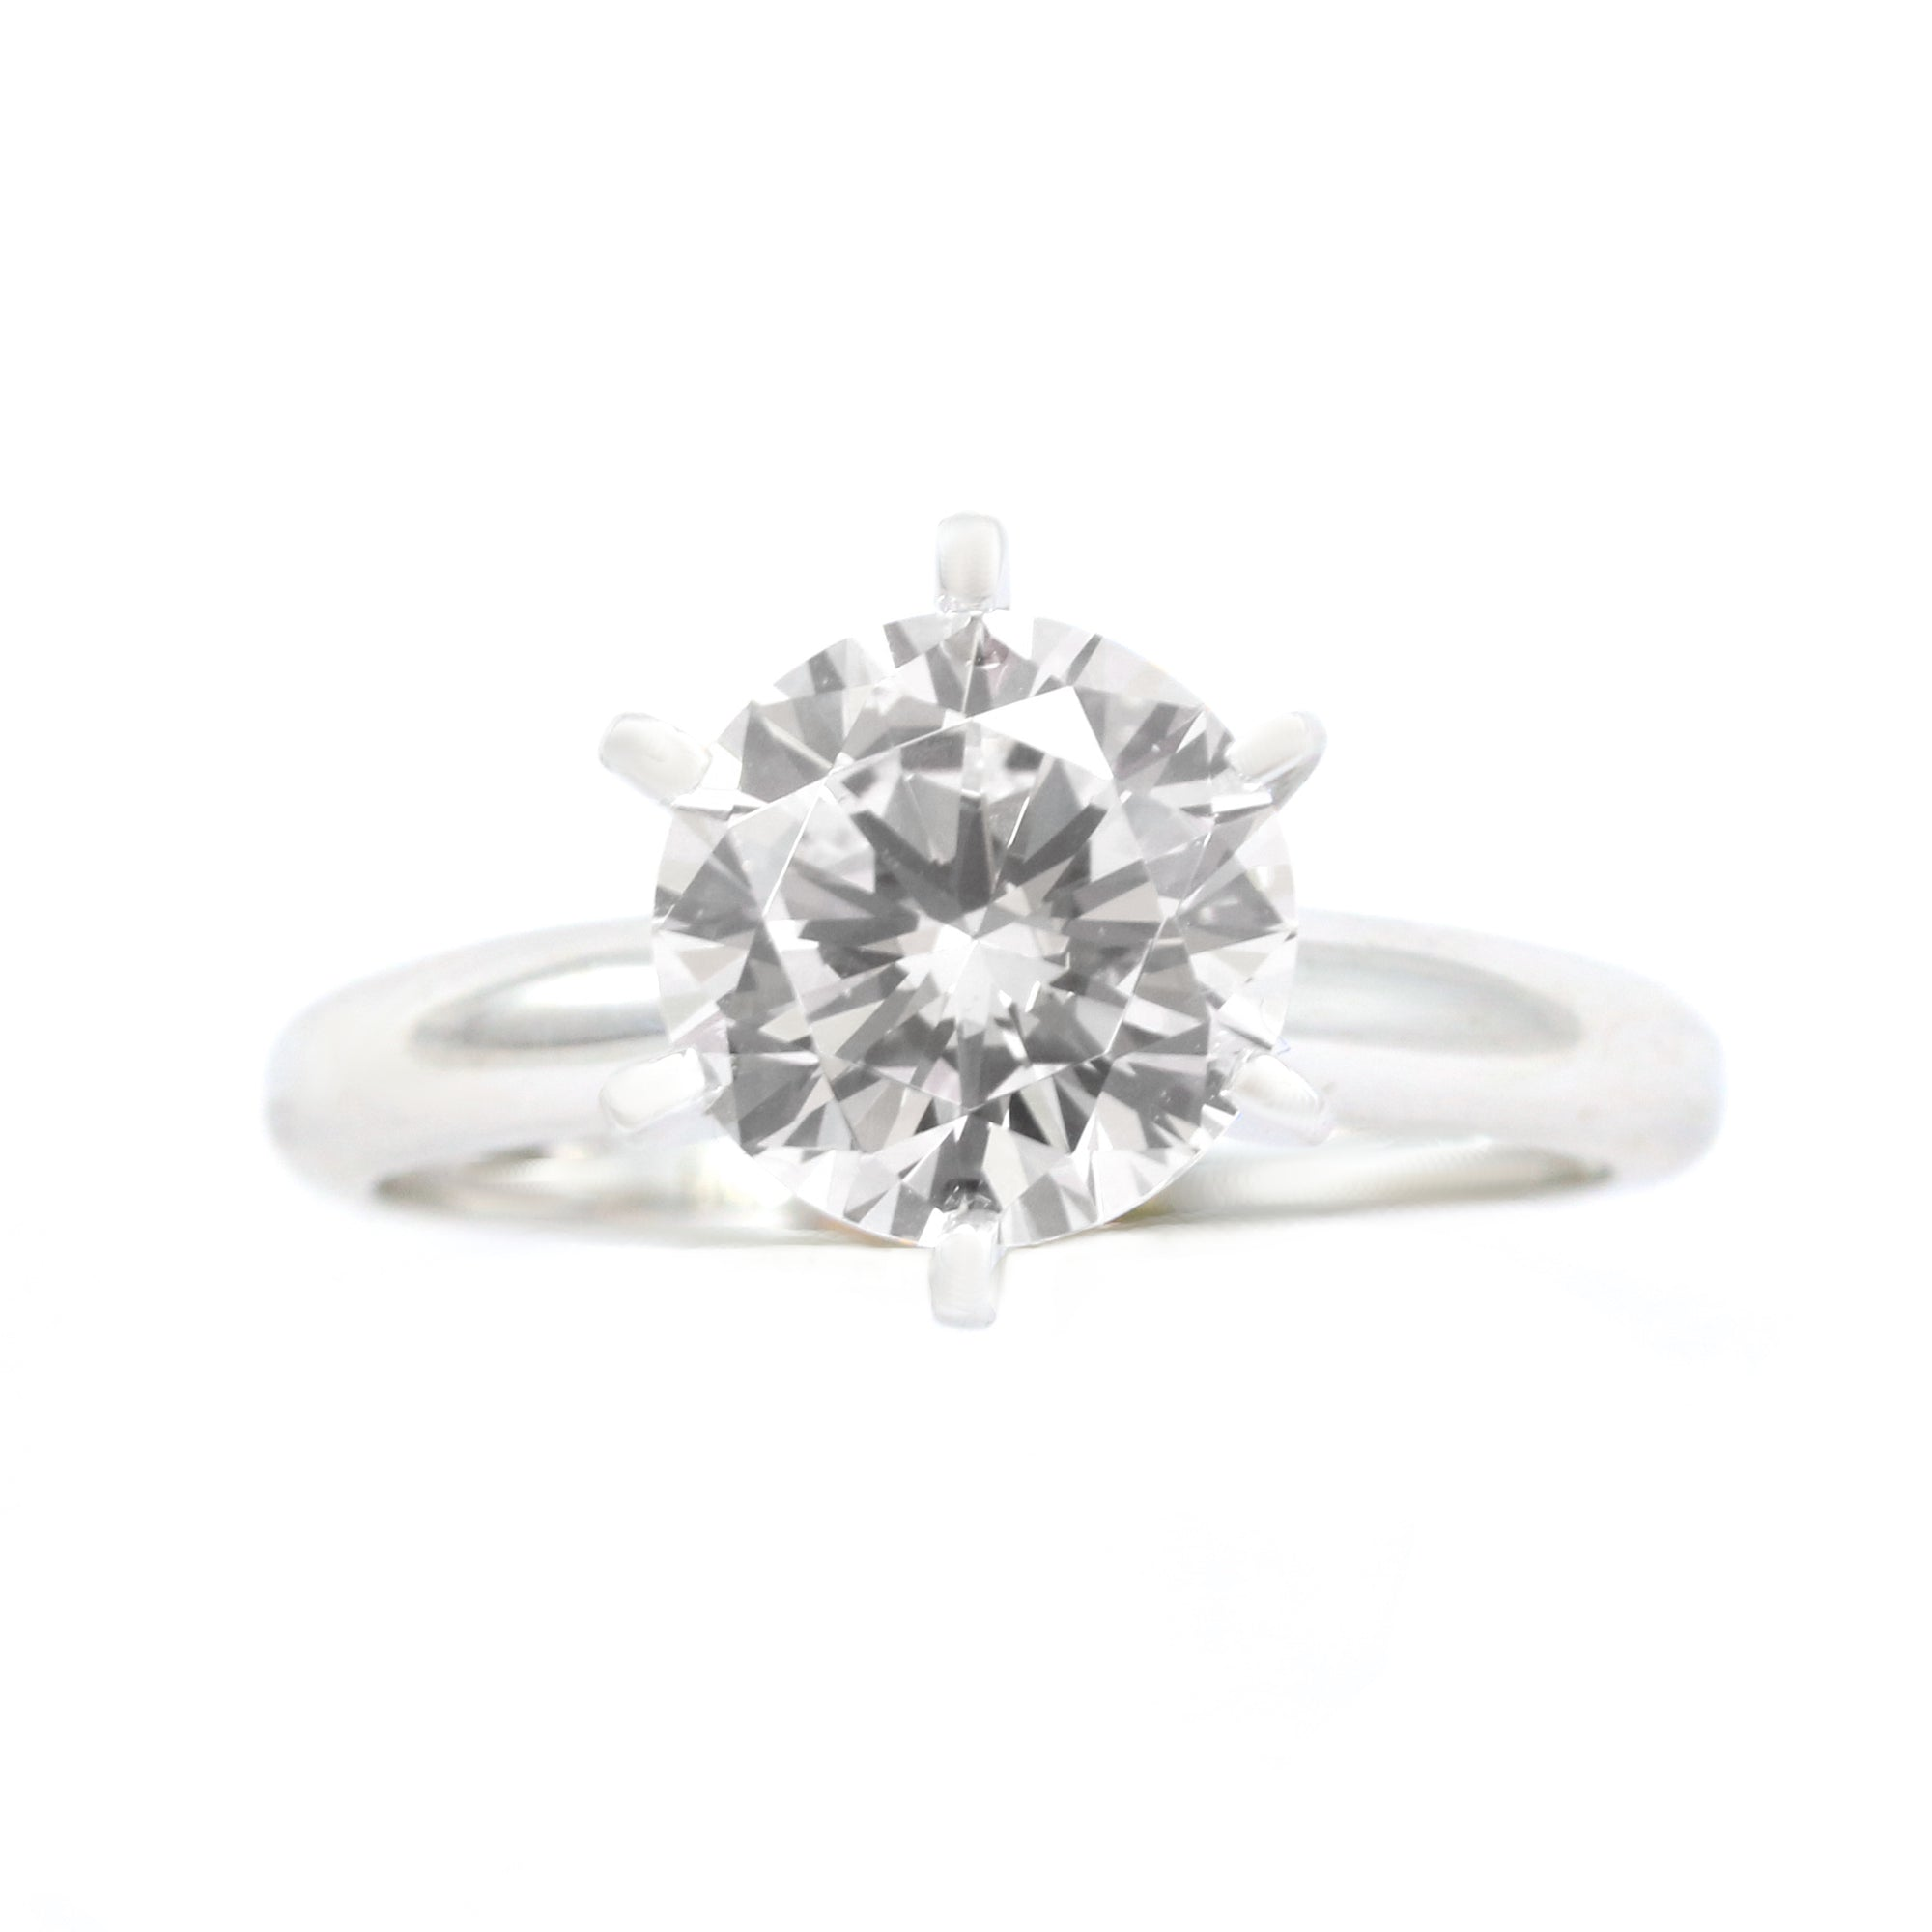 21c075a93 2 Ct. Round Cut Solitaire Solid 14K White Gold Engagement Ring - Glamour  Life Diamonds